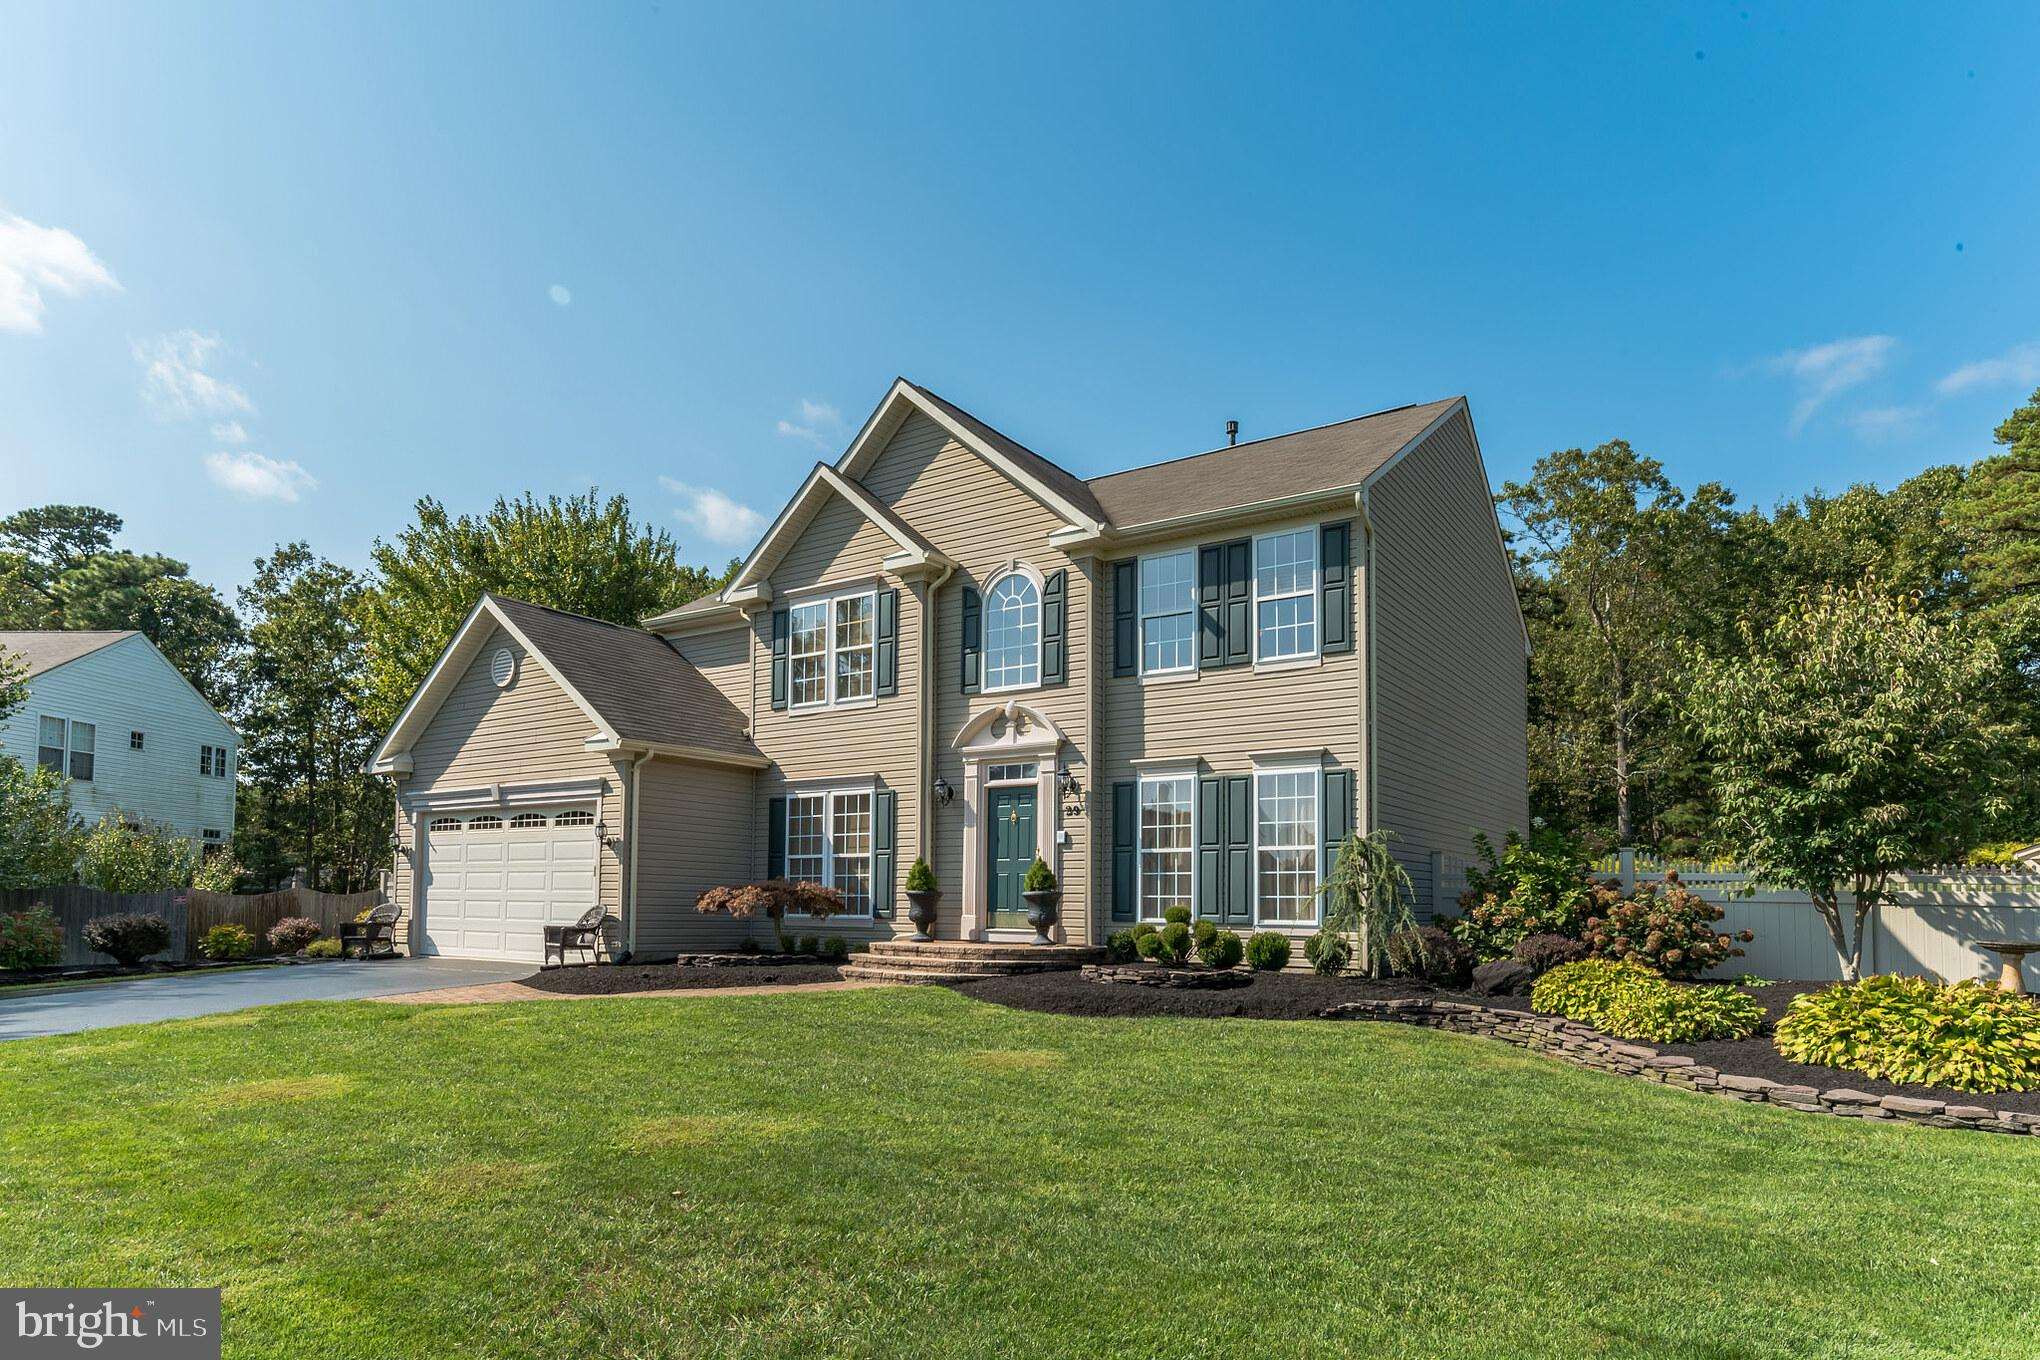 29 PENN PLACE, FORKED RIVER, NJ 08731